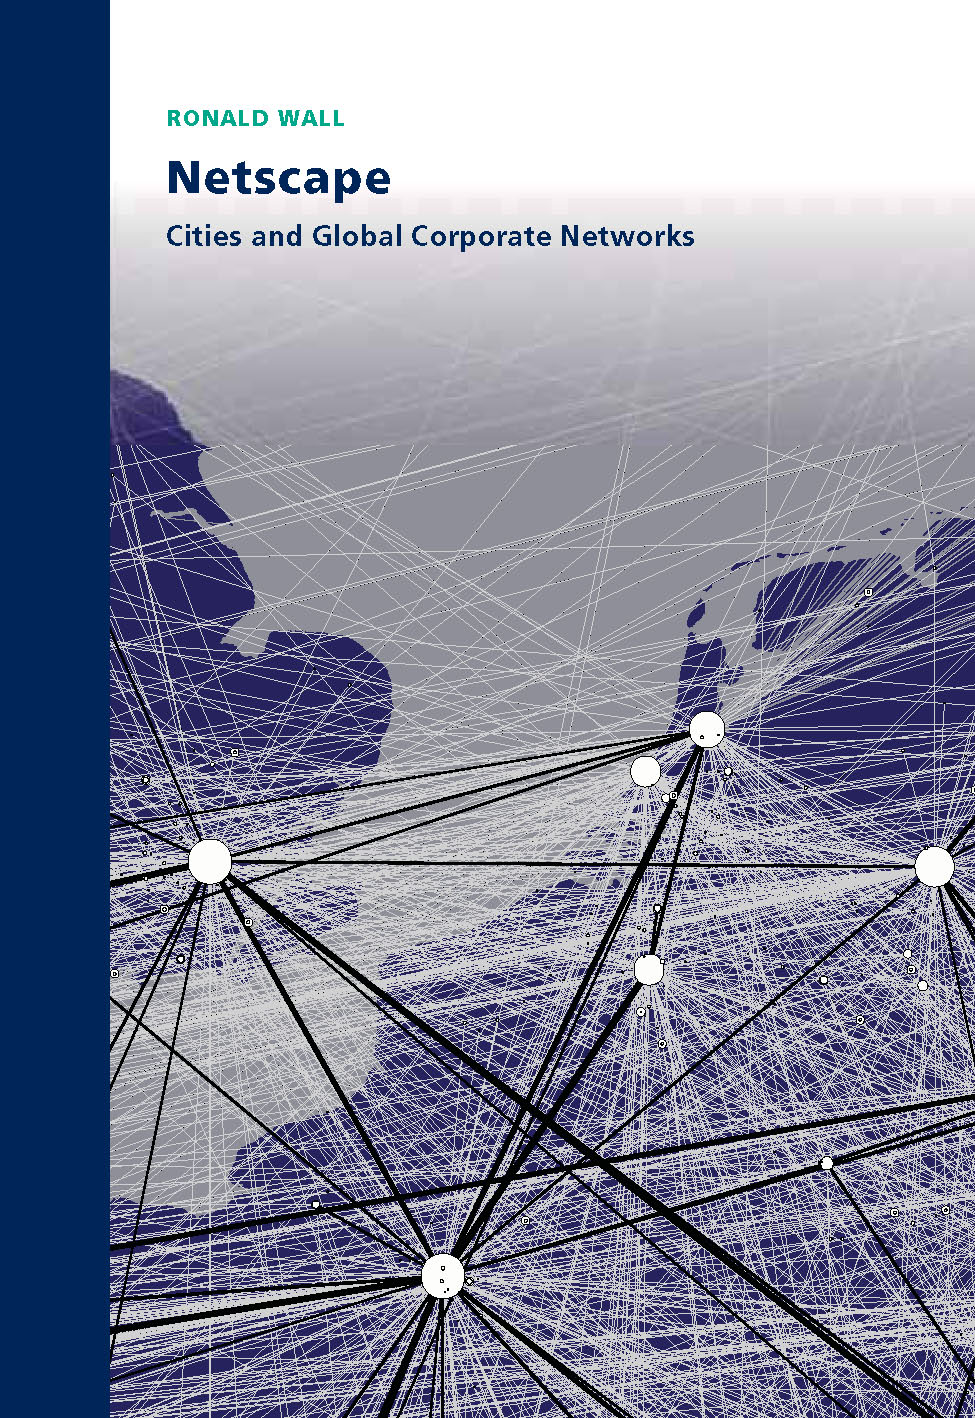 NETSCAPE: Cities and Global Corporate Networks